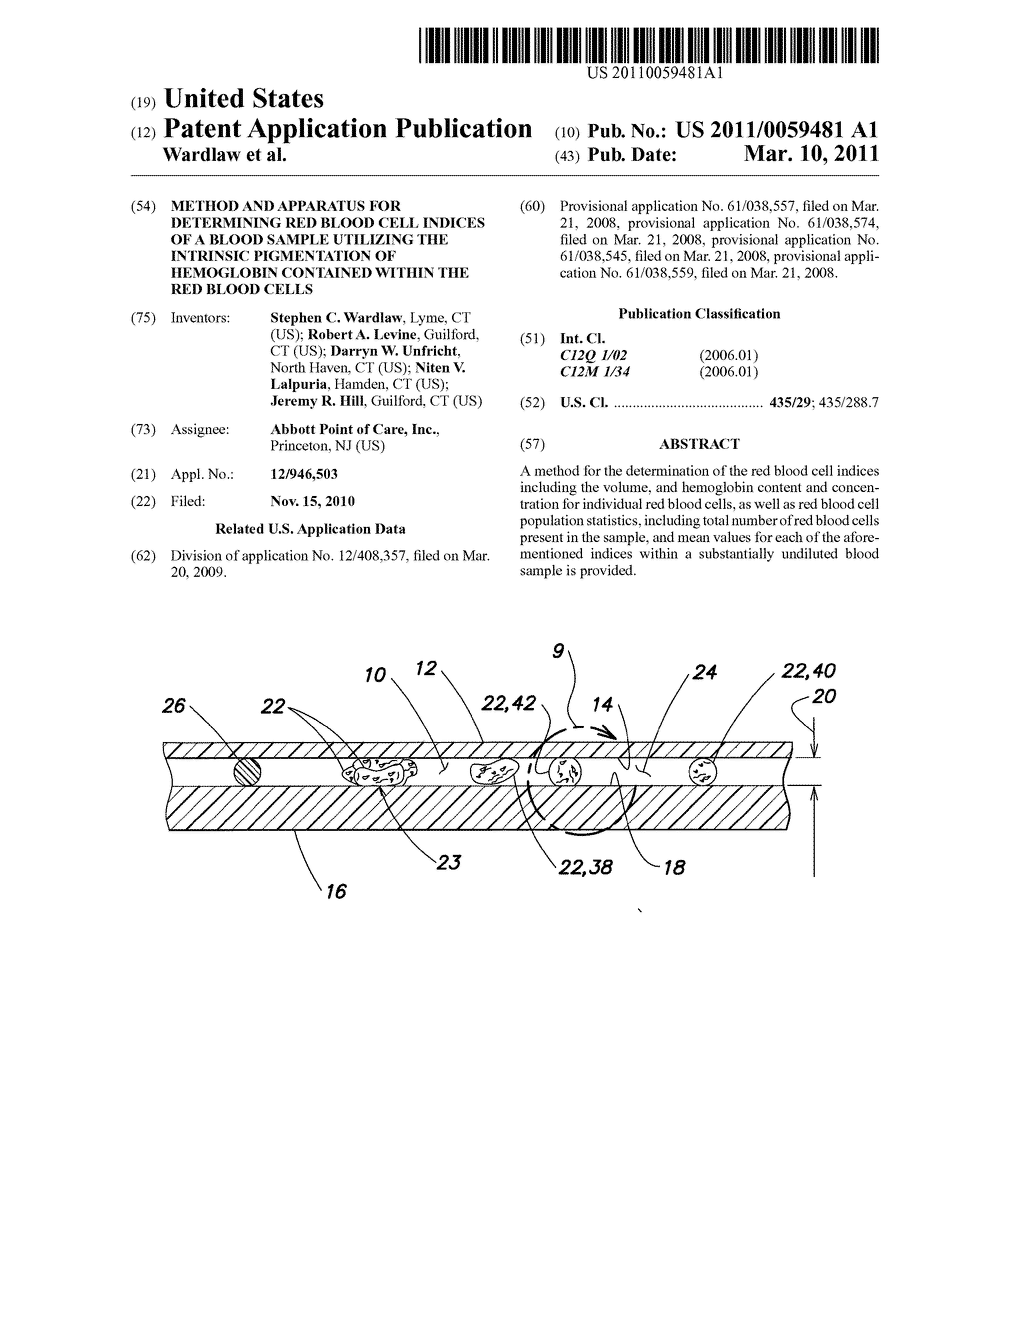 Method And Apparatus For Determining Red Blood Cell Indices Of A White Cells Diagram Sample Utilizing The Intrinsic Pigmentation Hemoglobin Contained Within